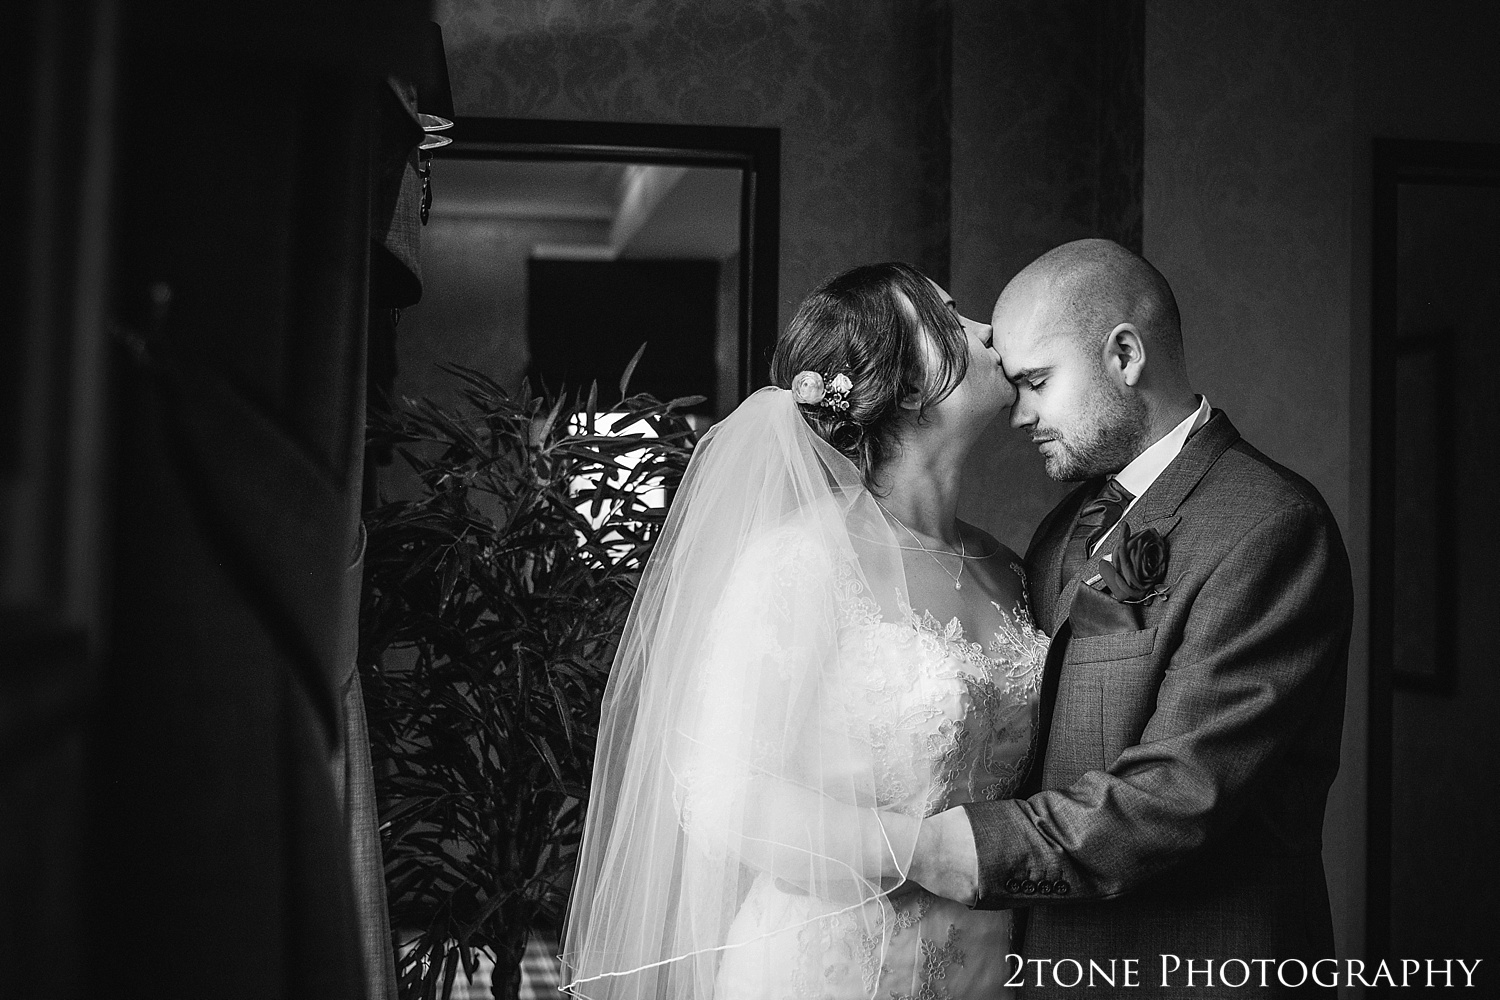 Creative wedding photography at the Vermonth Hotel by wedding photographers 2tone Photography www.2tonephotography.co.uk